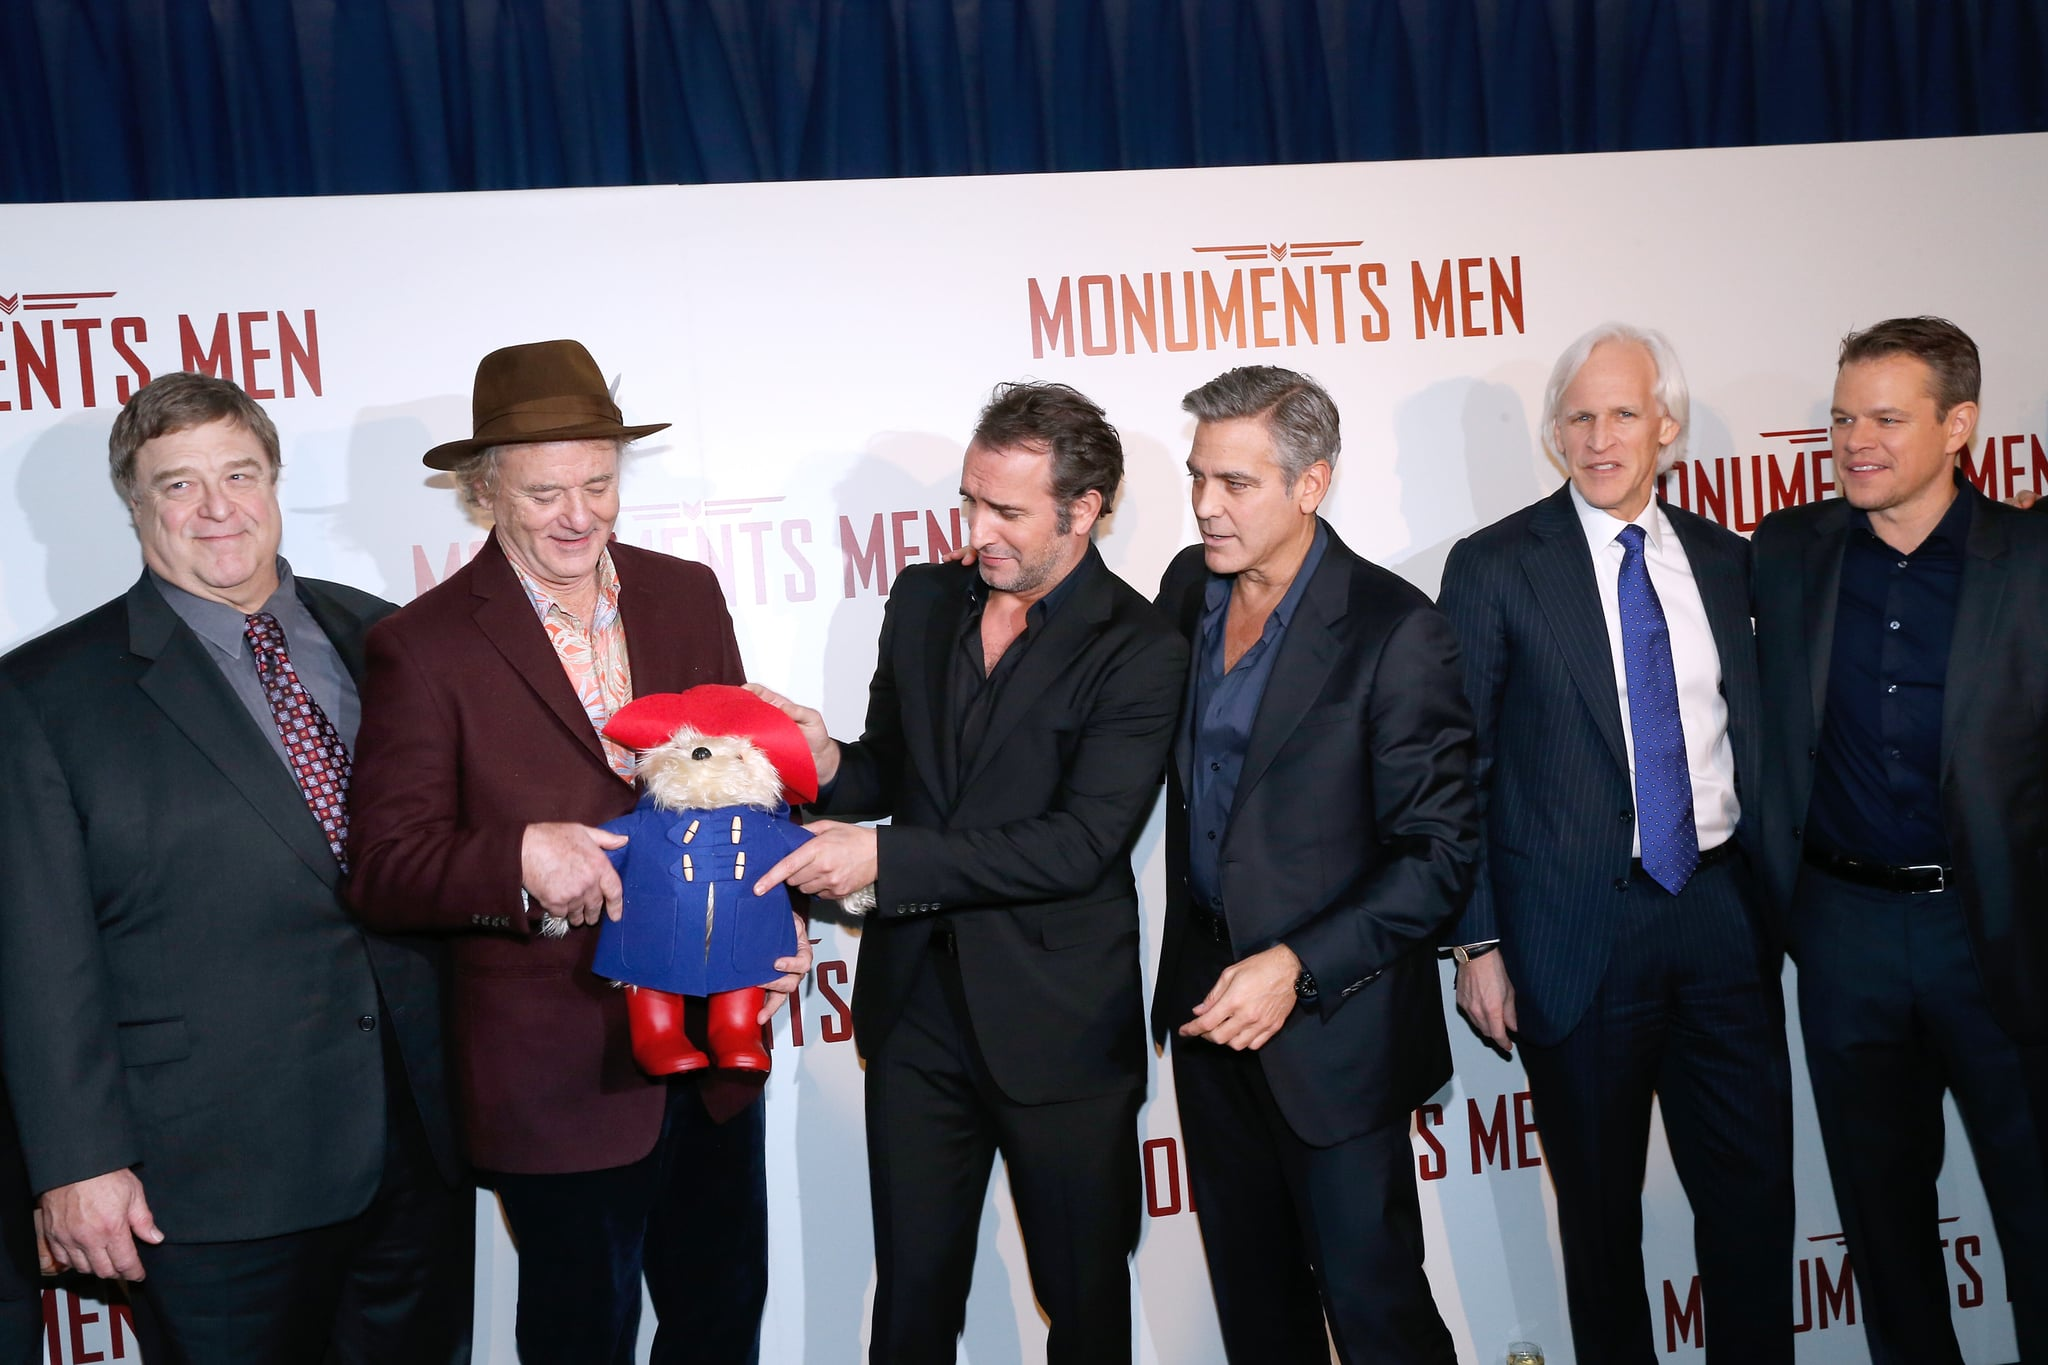 Later, at the Paris screening, someone threw the guys another Paddington Bear. But they took it in stride.